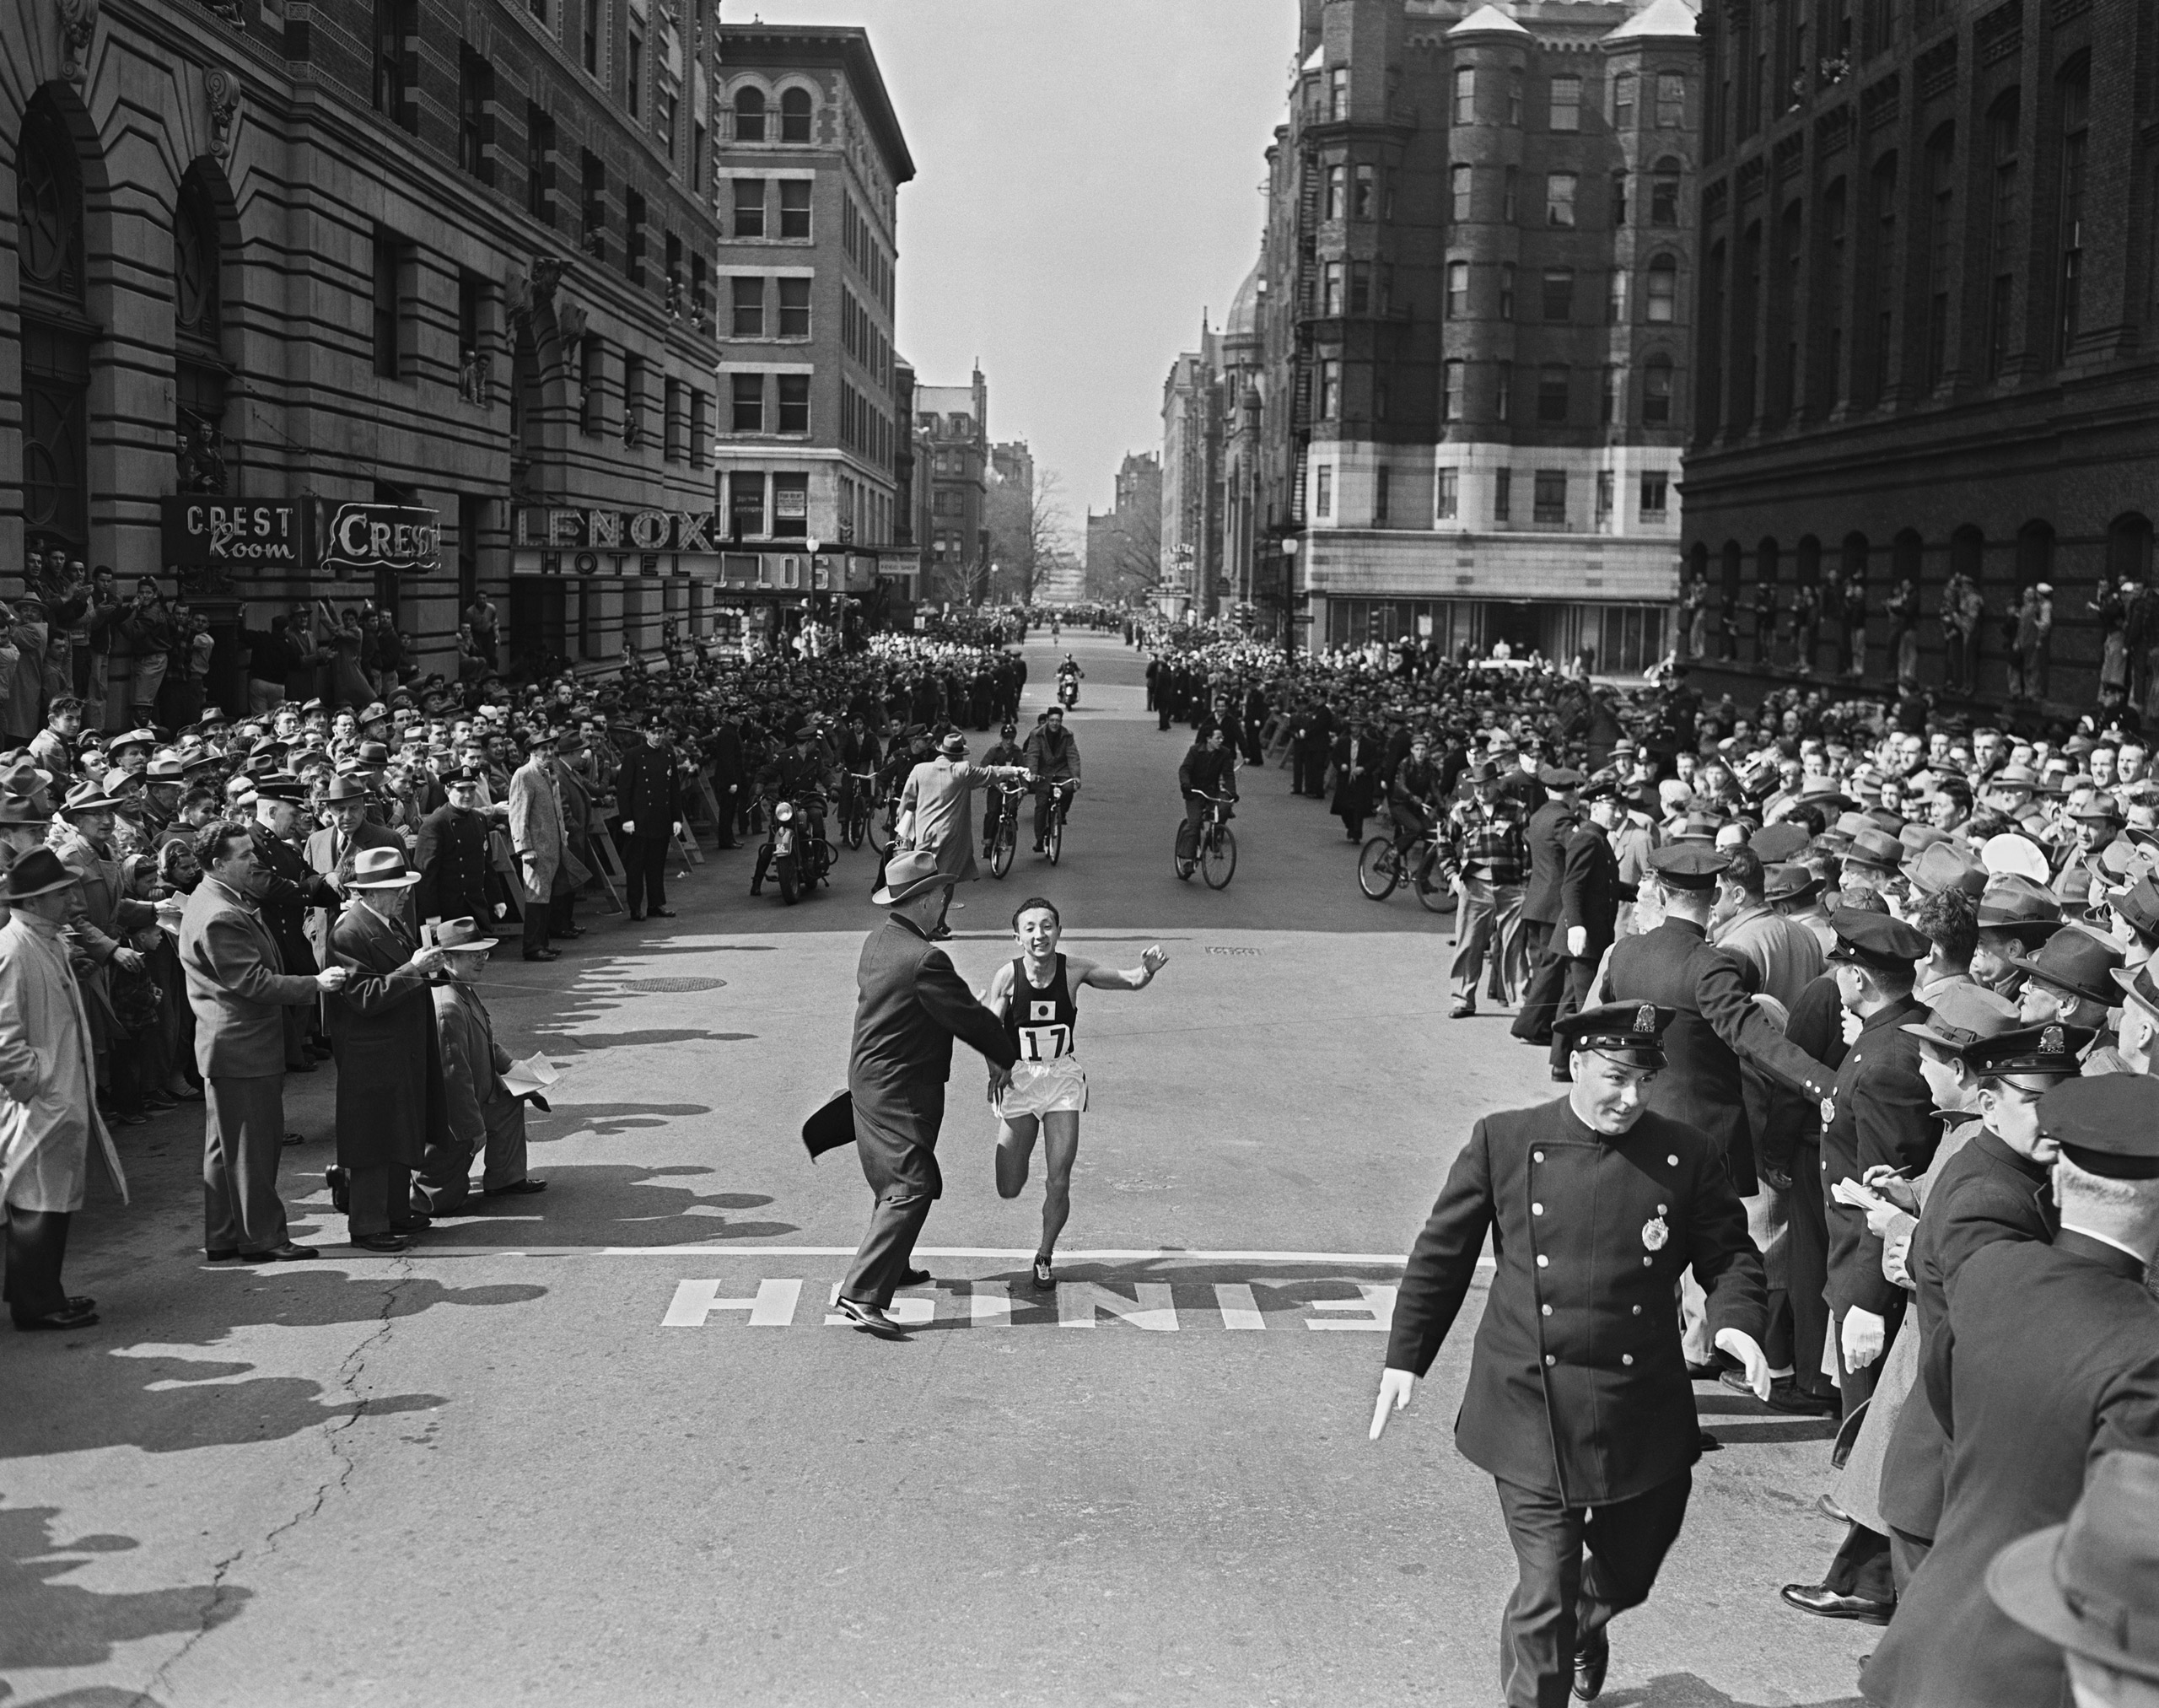 Keizo Yamada, 25-year-old Japanese mining engineer, crosses the finish line to win the 57th Boston Marathon, in 1953.